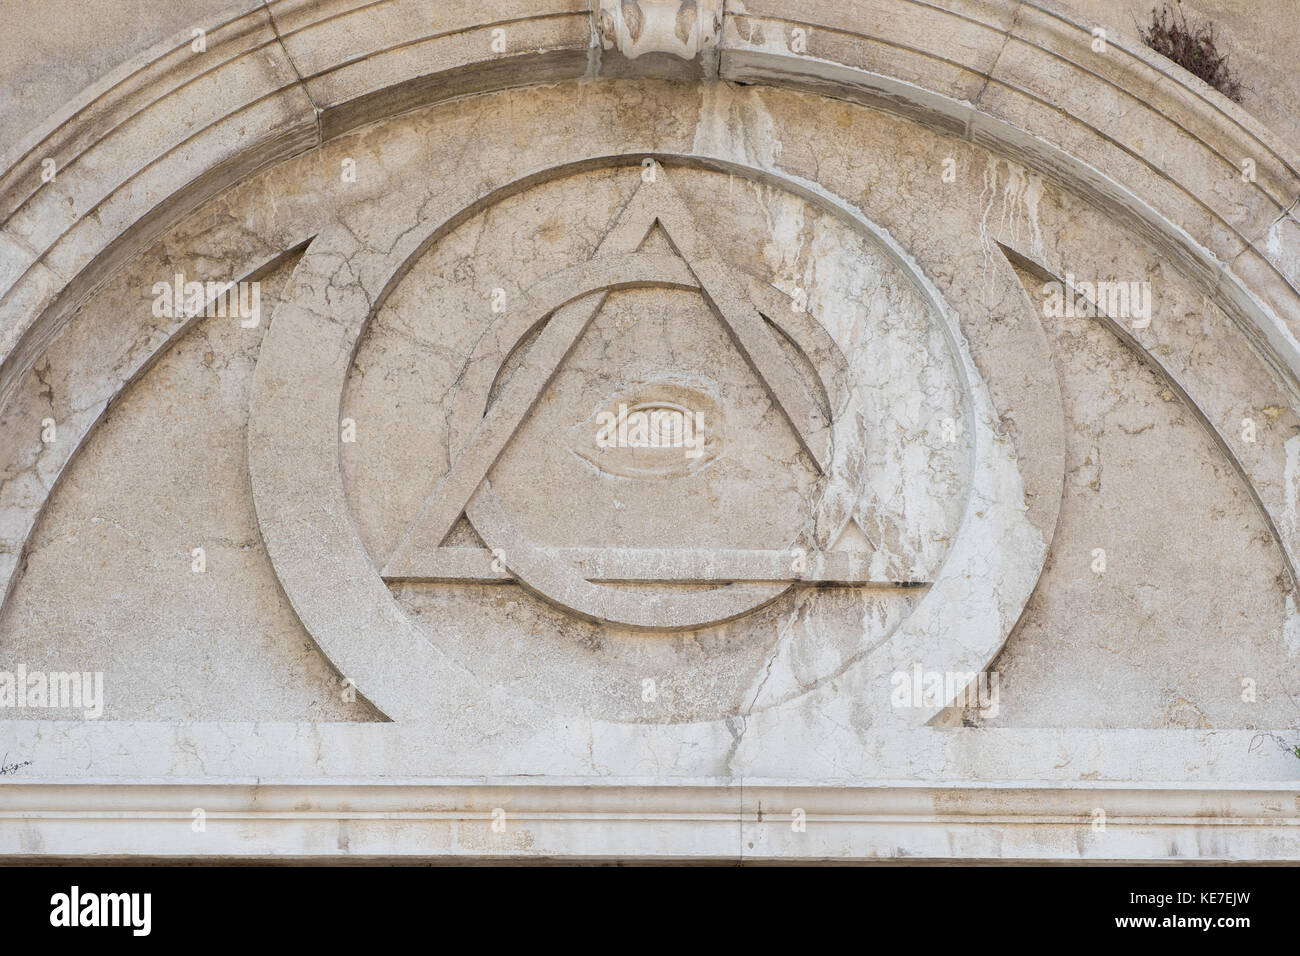 Masonic symbol of eye and pyramid stock photos masonic symbol of eye in the pyramid the bas relief on the wall of the church biocorpaavc